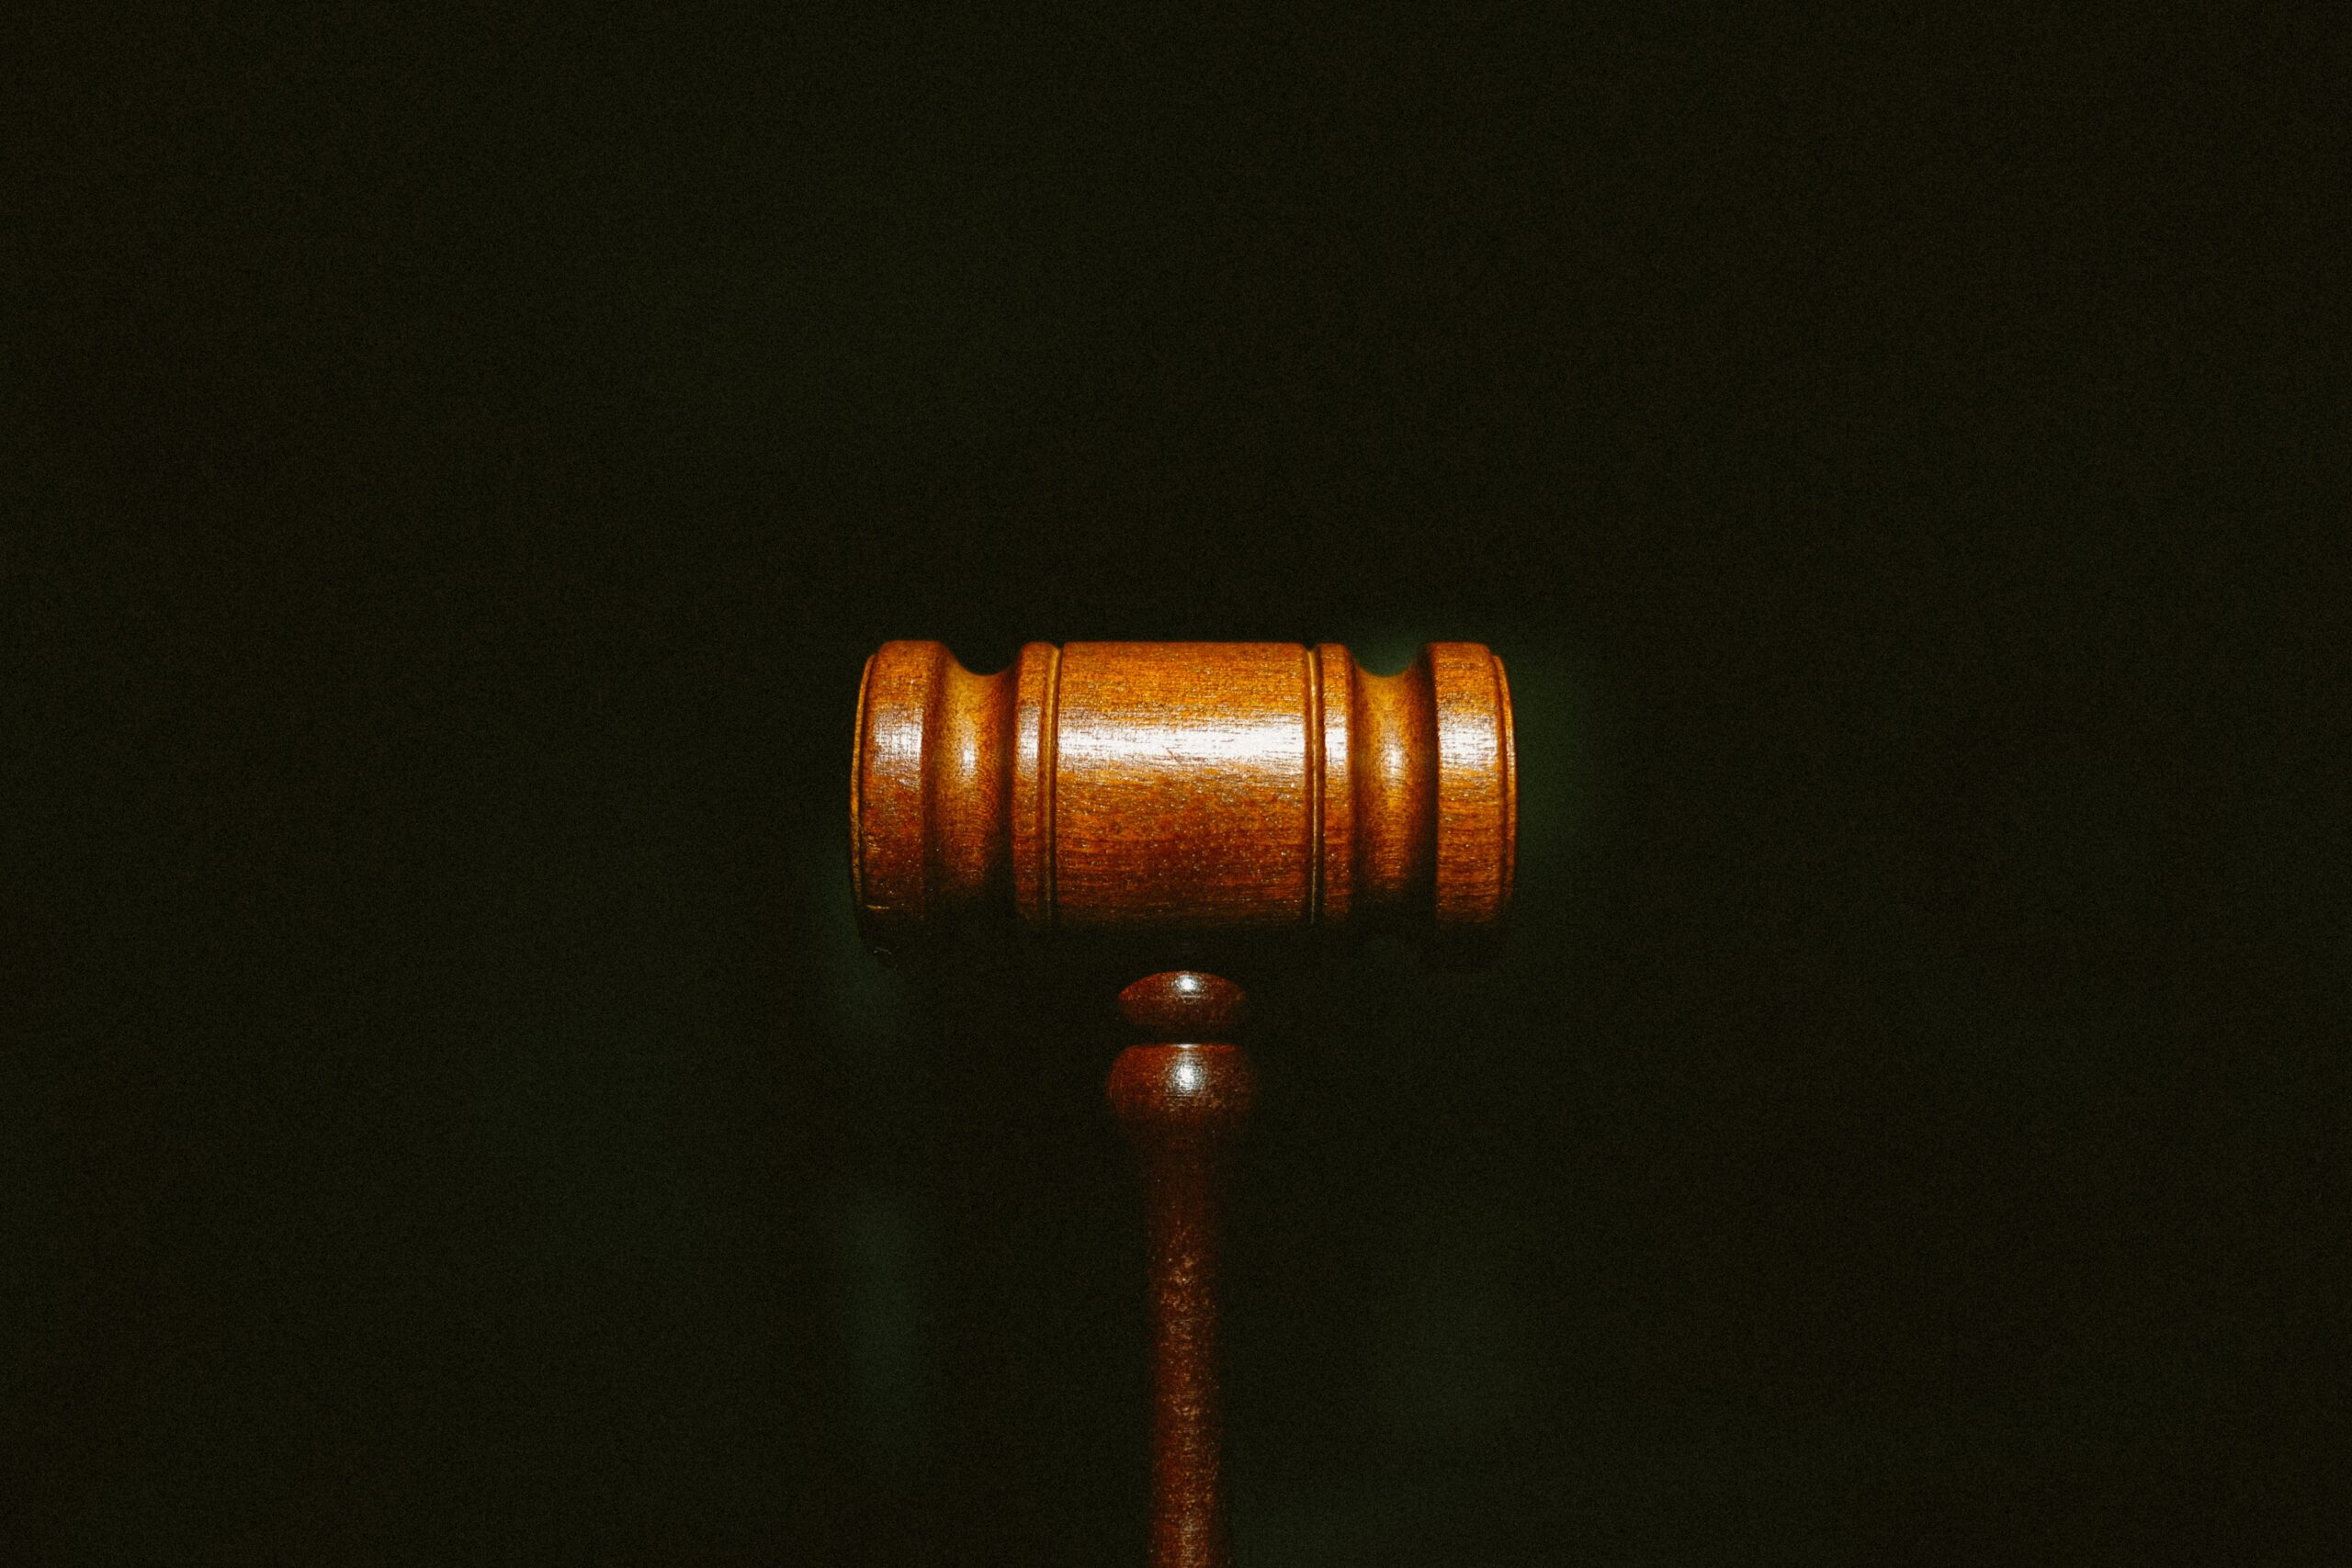 tingey-injury-law-firm-nSpj-Z12lX0-unsplash